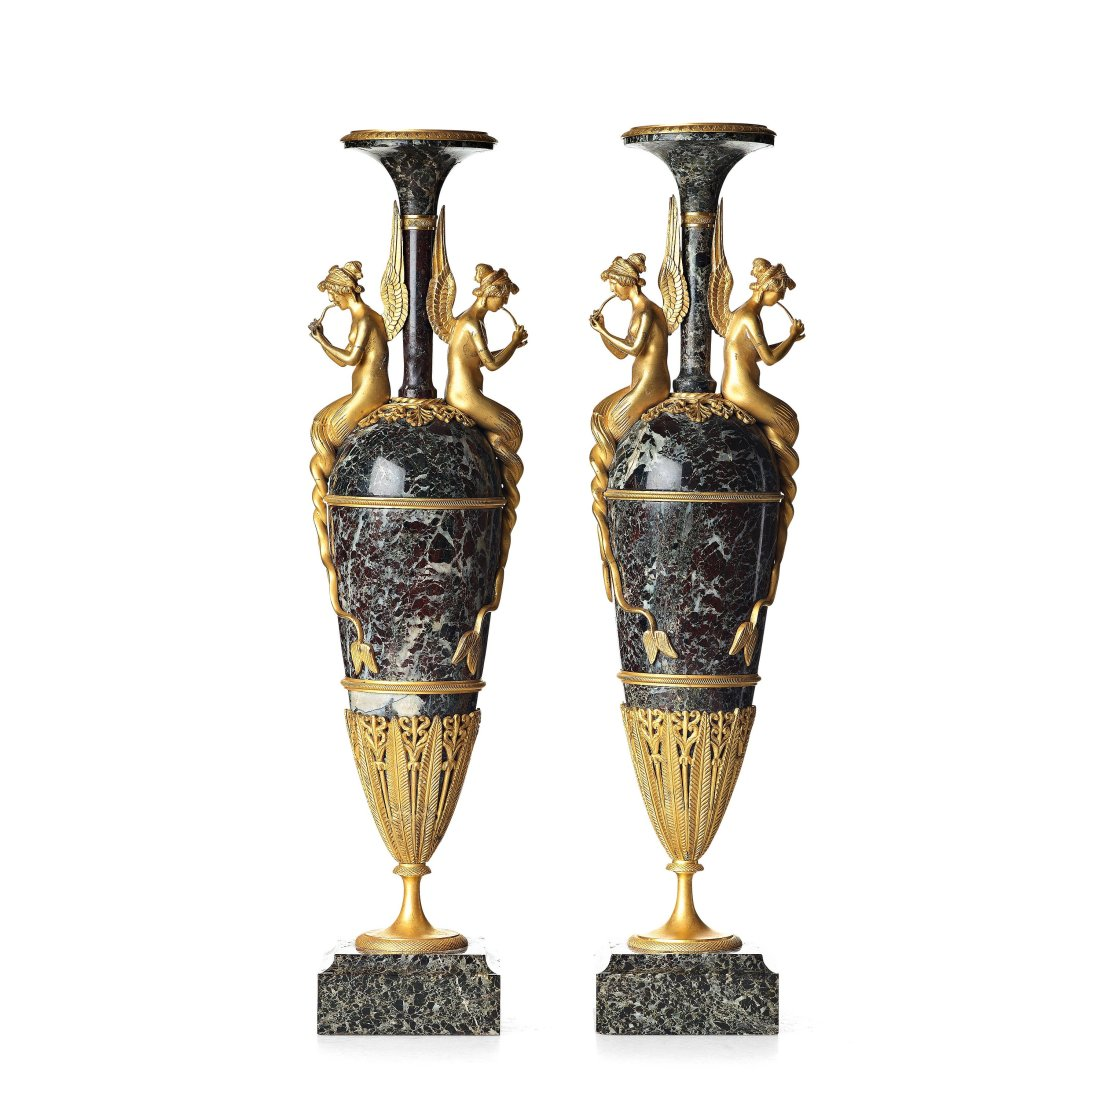 Pair of vases. Second half of the 19th century.